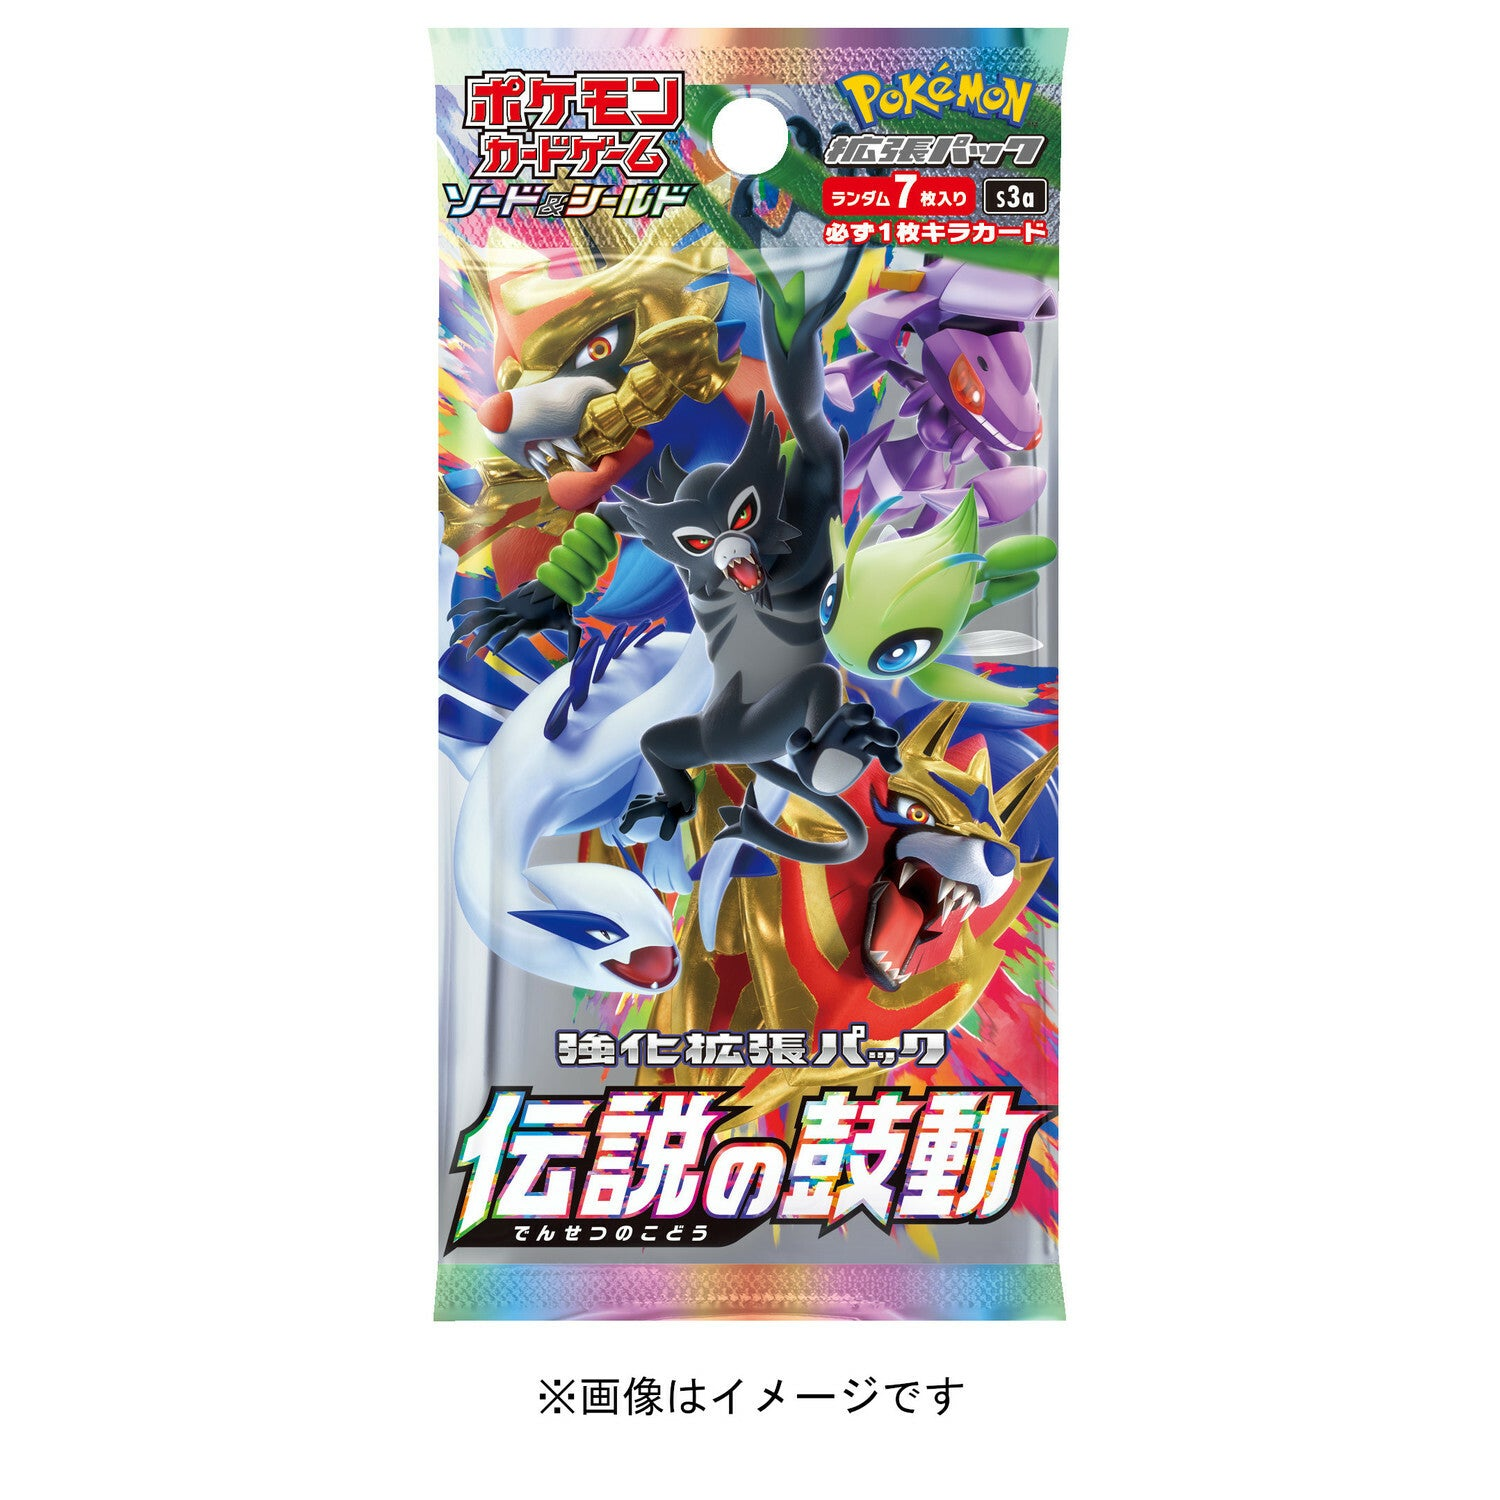 Pokemon Card INFINITY ZONE Japanese Booster Box Sealed Sword FREE SHIP FROM USA!